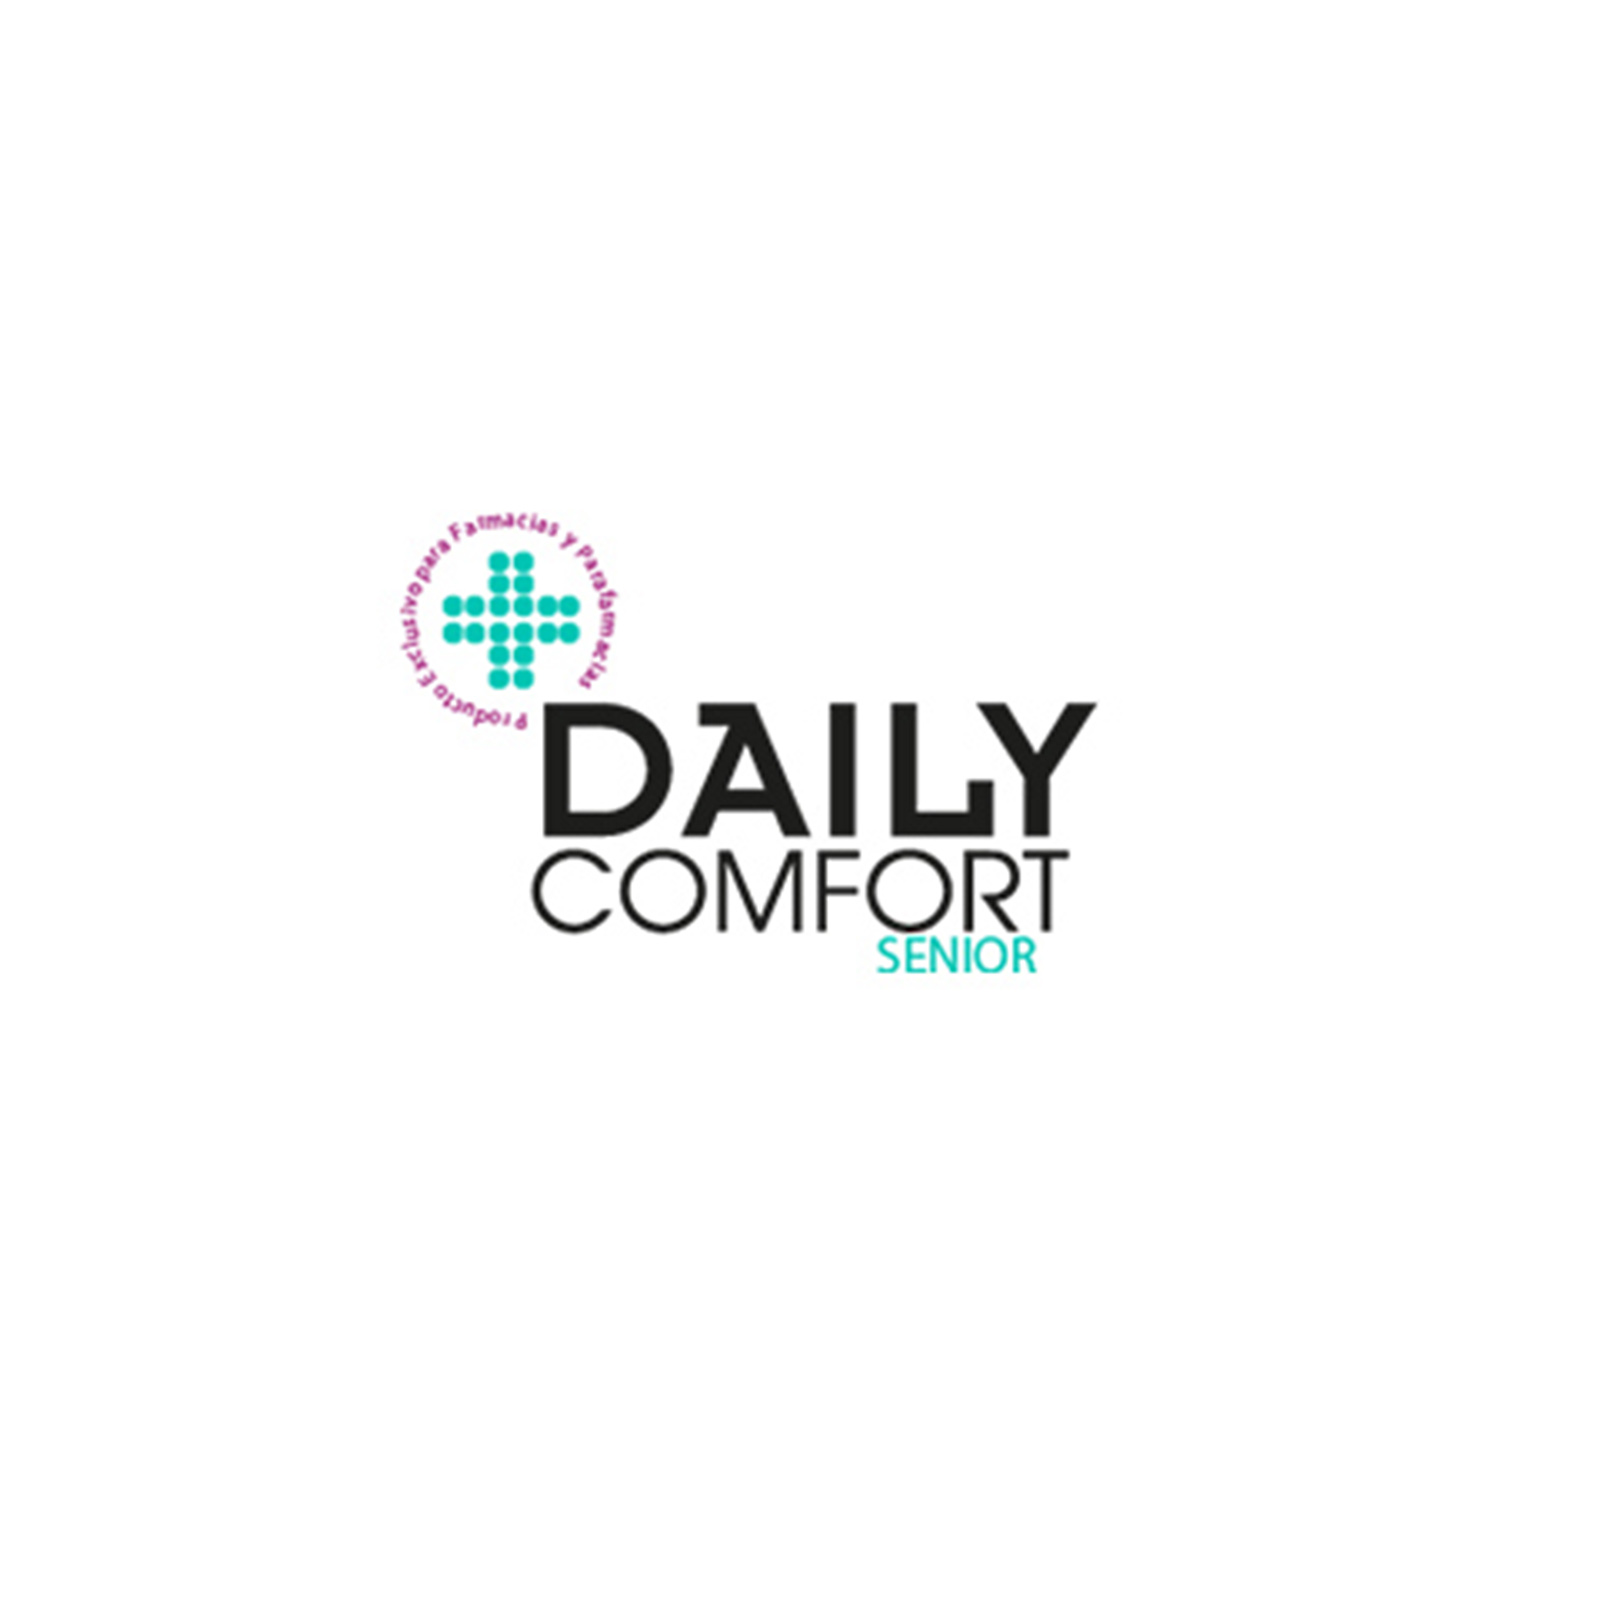 LOGO DAILY CONFORT